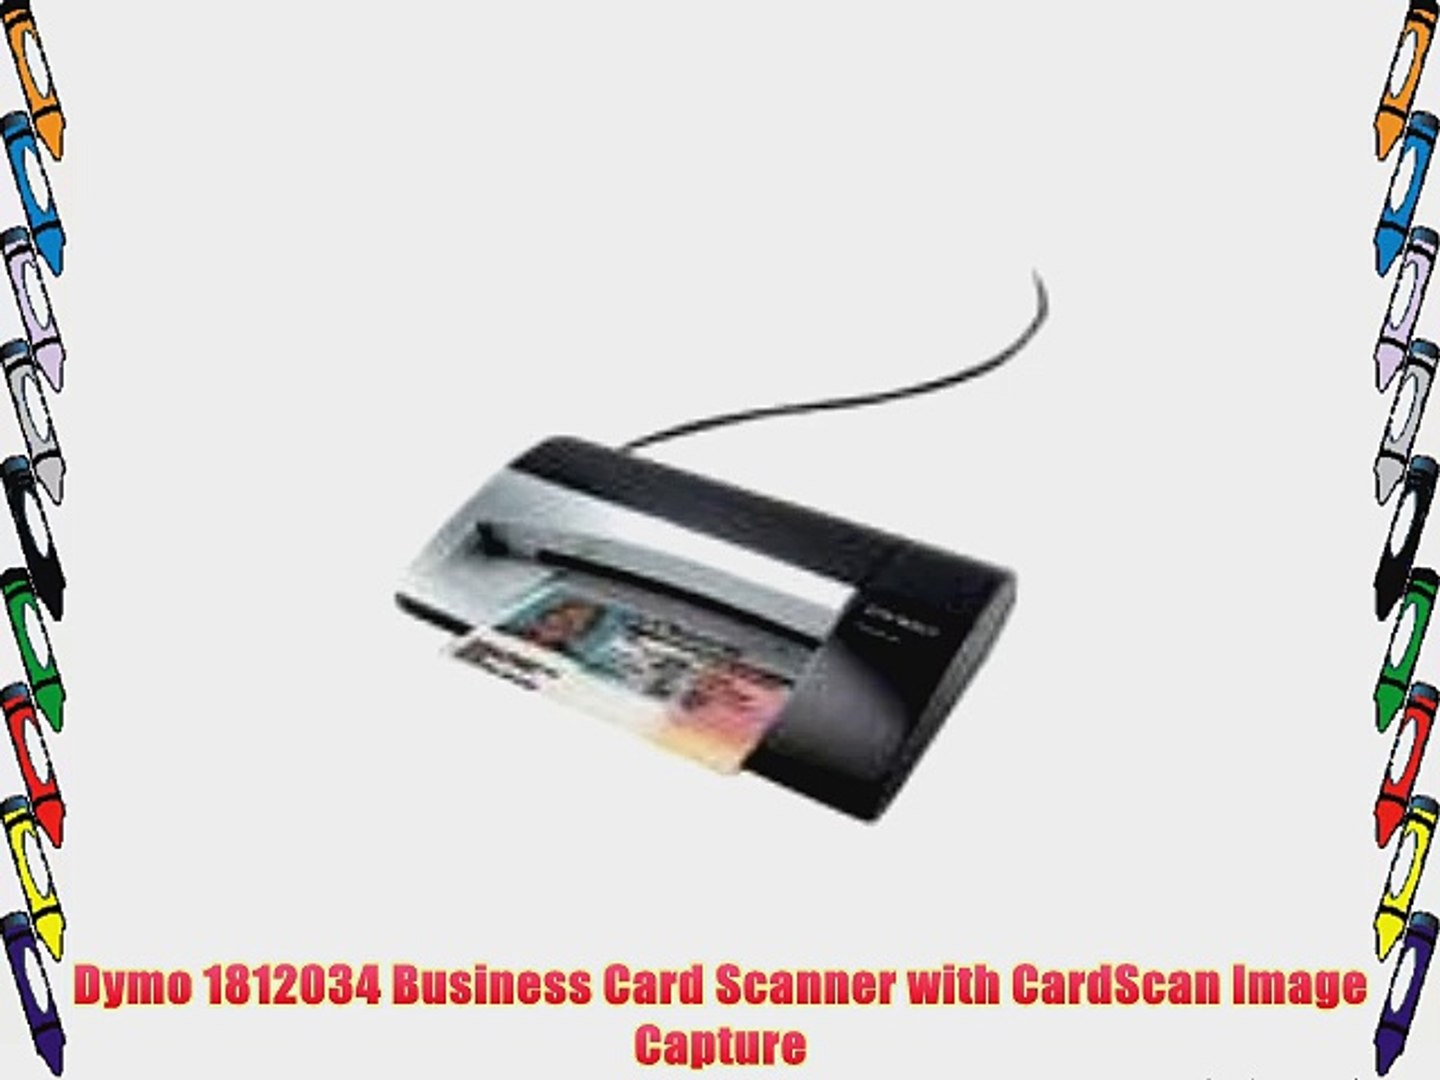 Dymo 1812034 Business Card Scanner With Cardscan Image